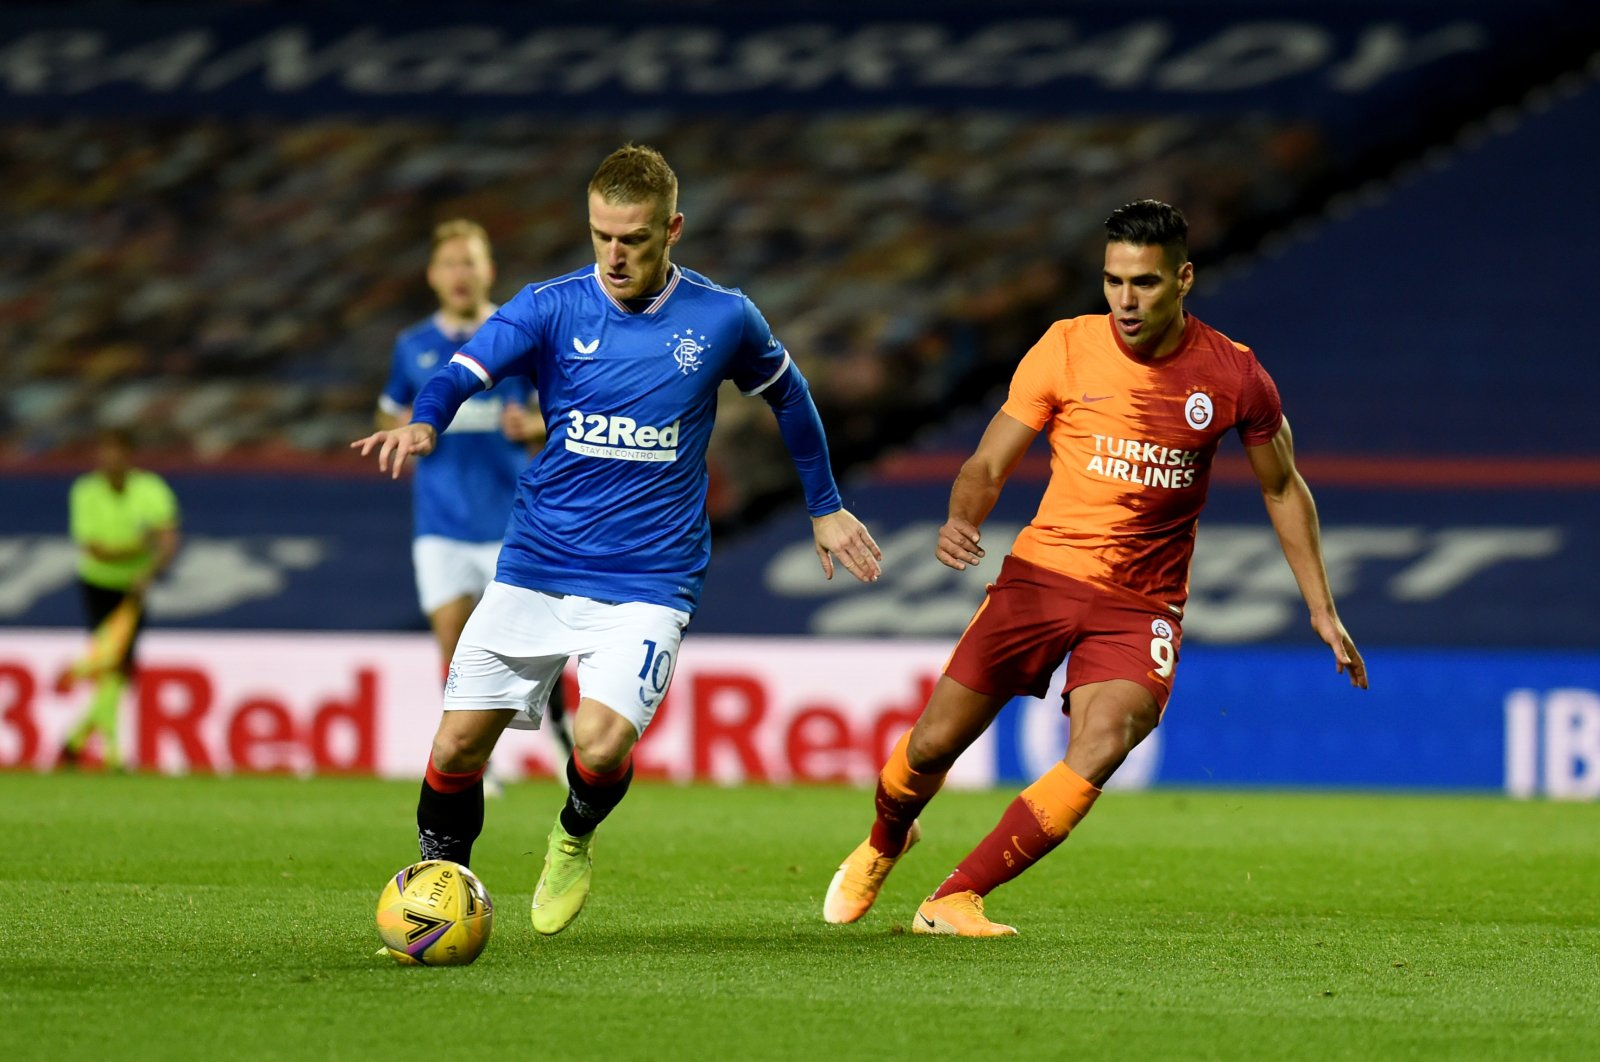 Rangers' Steven Davies (L) and Galatasaray's Radamel Falcao compete for the ball during the Europa League playoff match in Glasgow, Scotland, Oct. 1, 2020. (AA Photo)